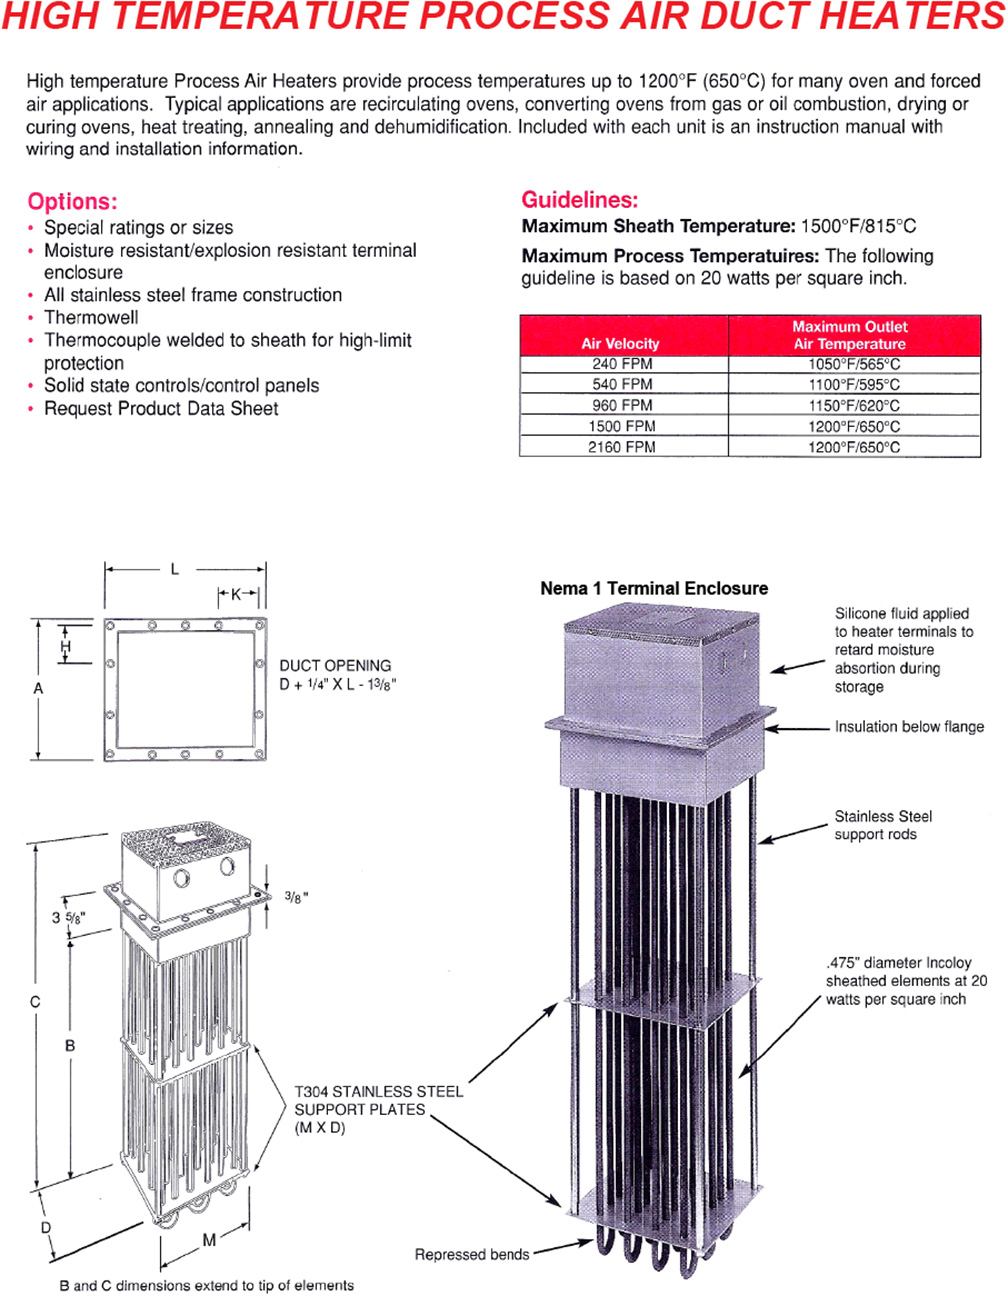 Process Air Duct Heaters 2